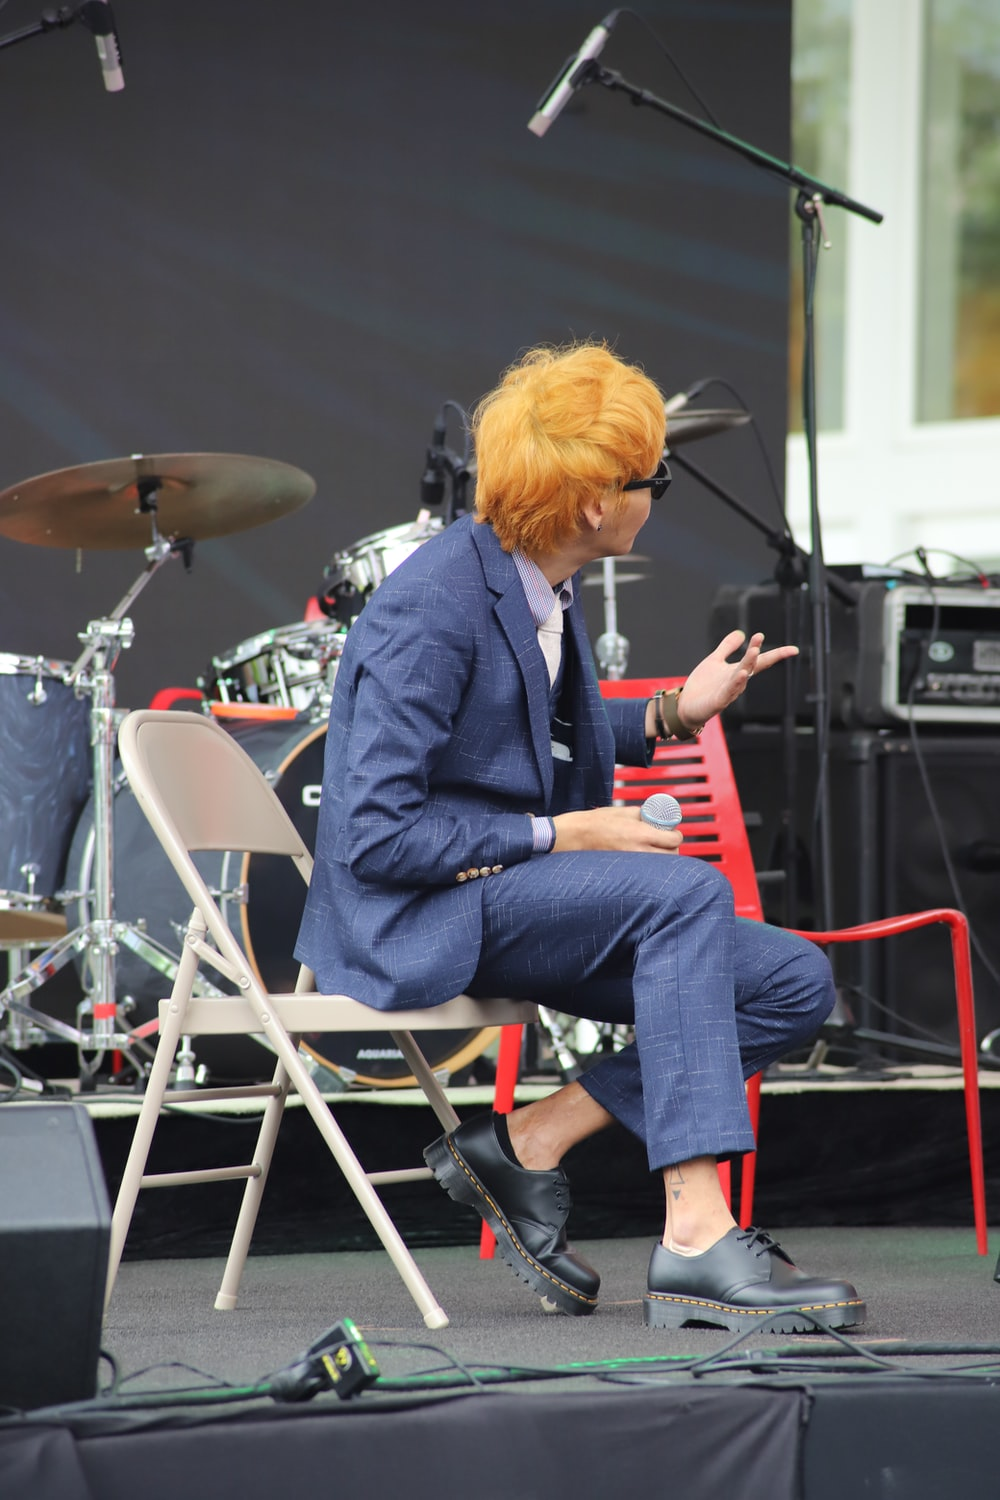 man wearing suit sitting on folding chair while holding microphone